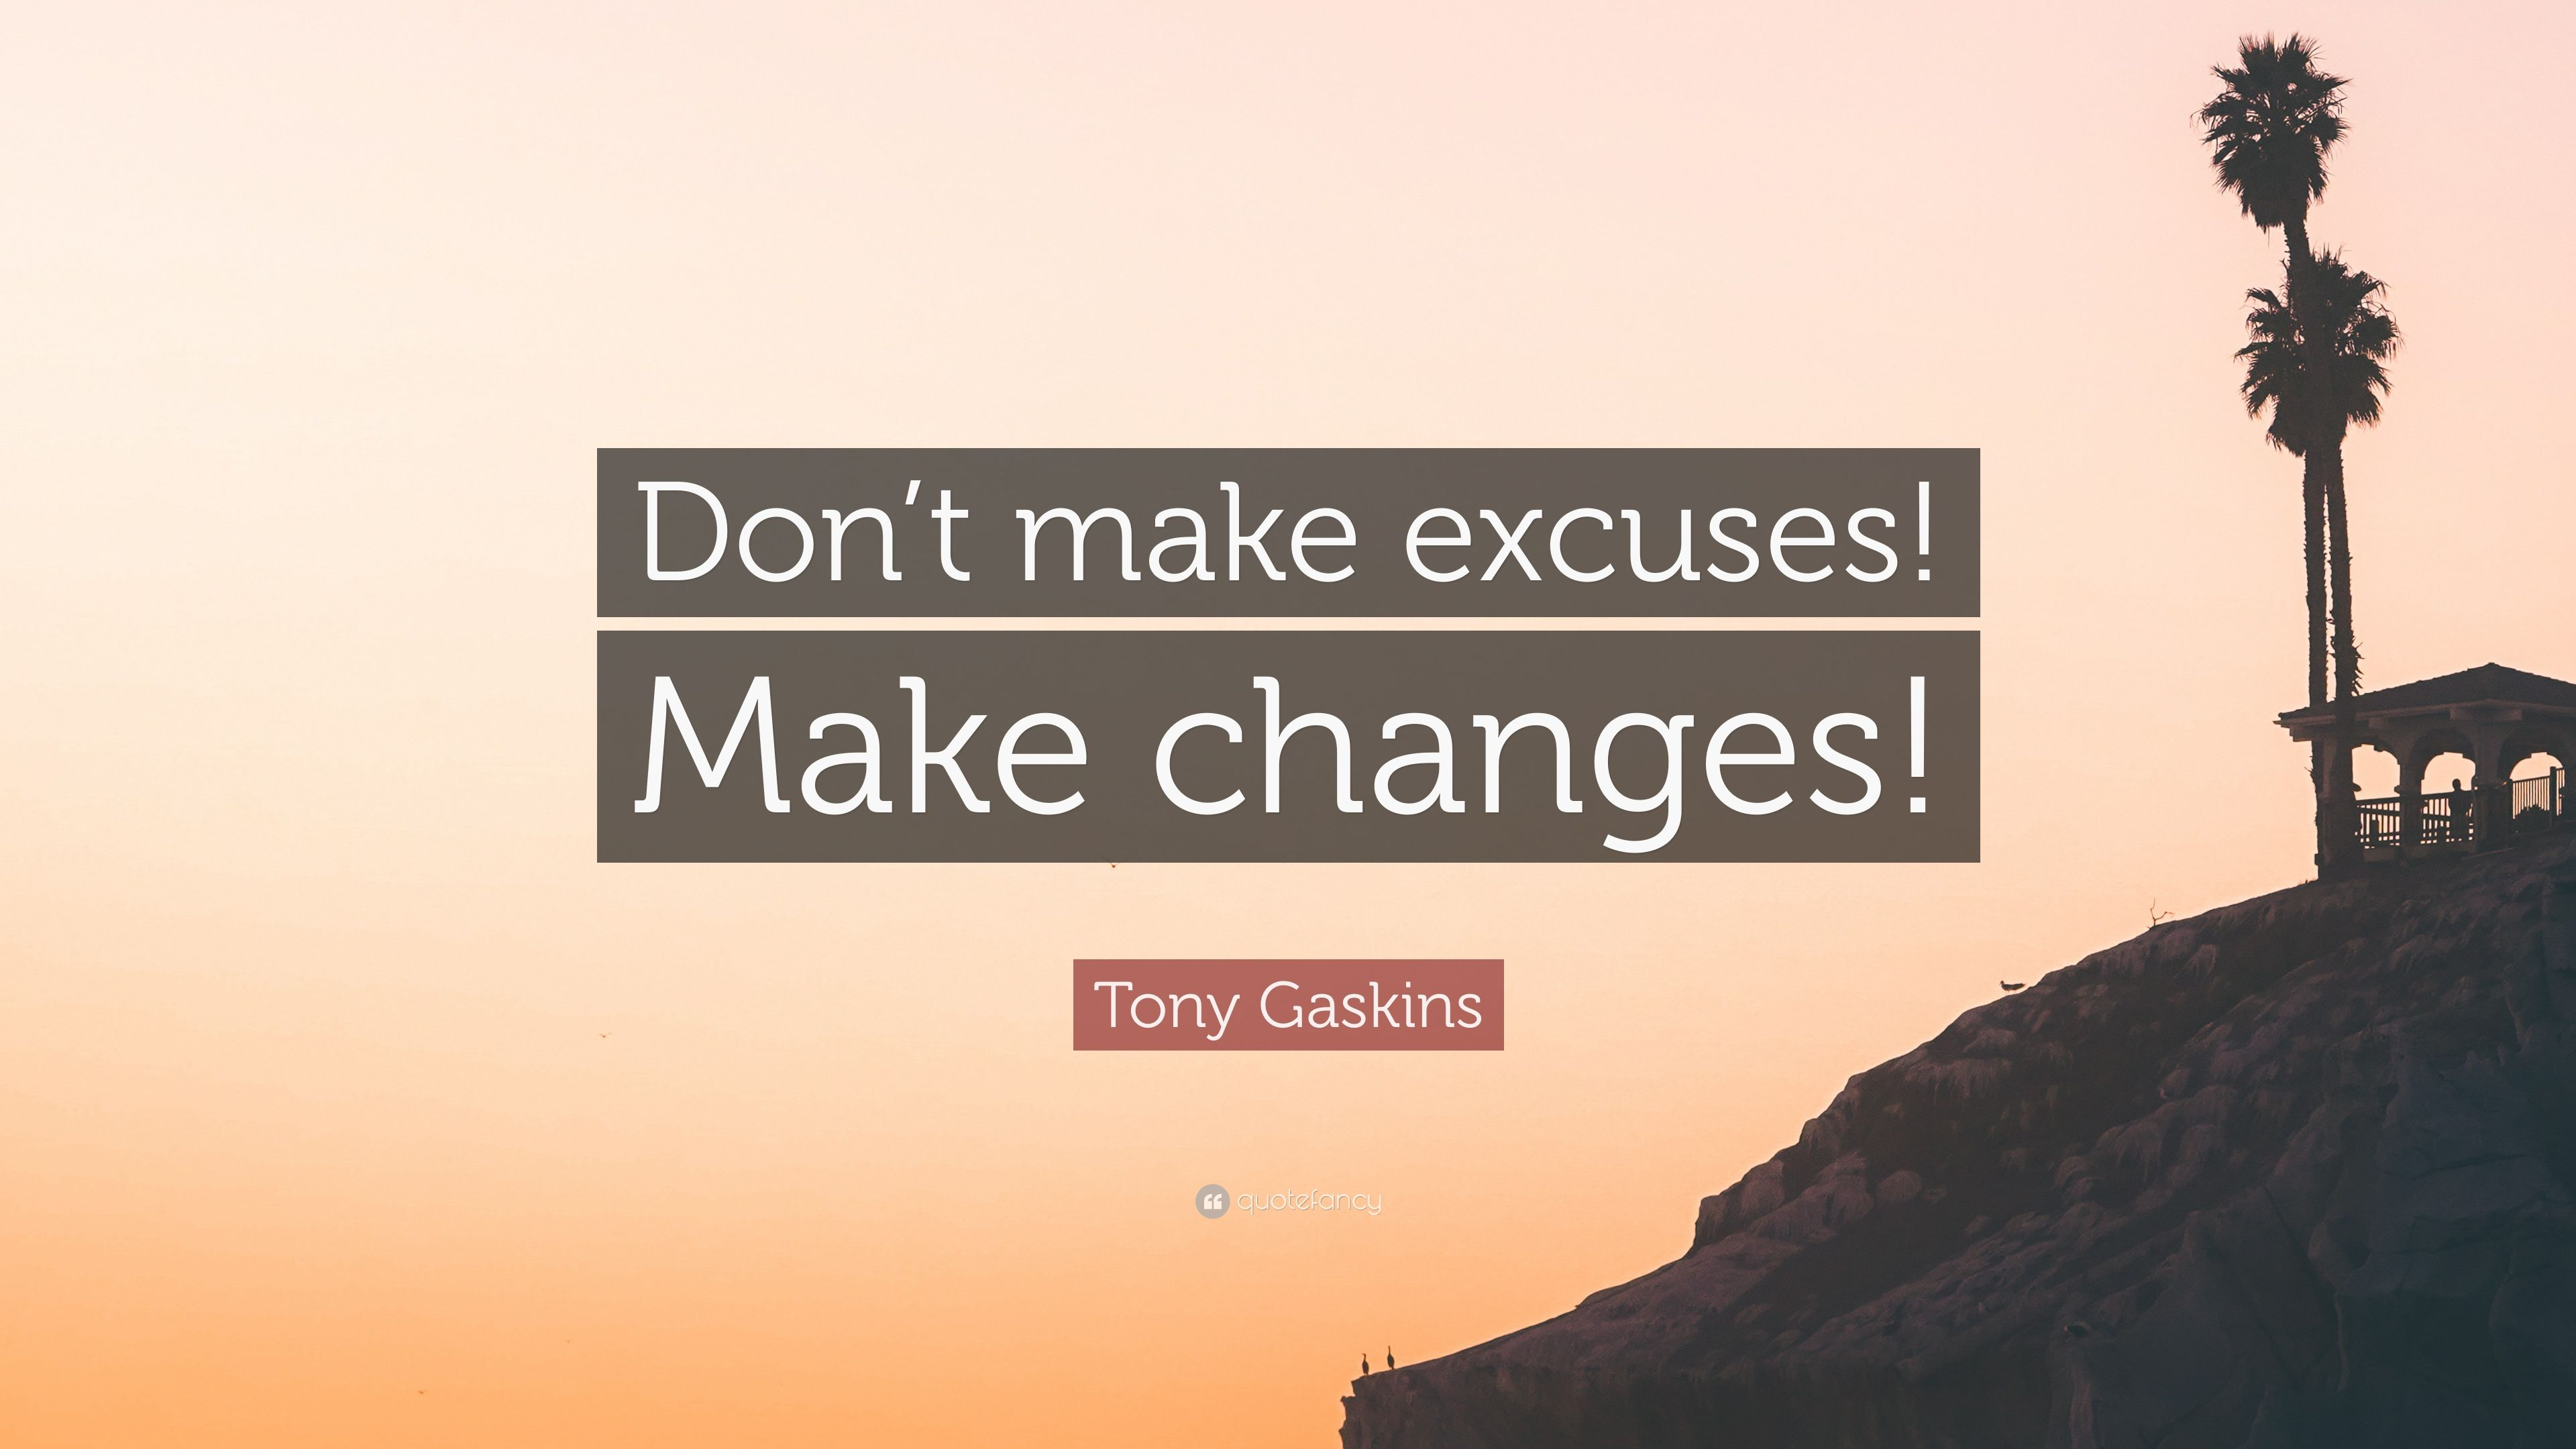 Tony Gaskins Quote: Dont make excuses! Make changes